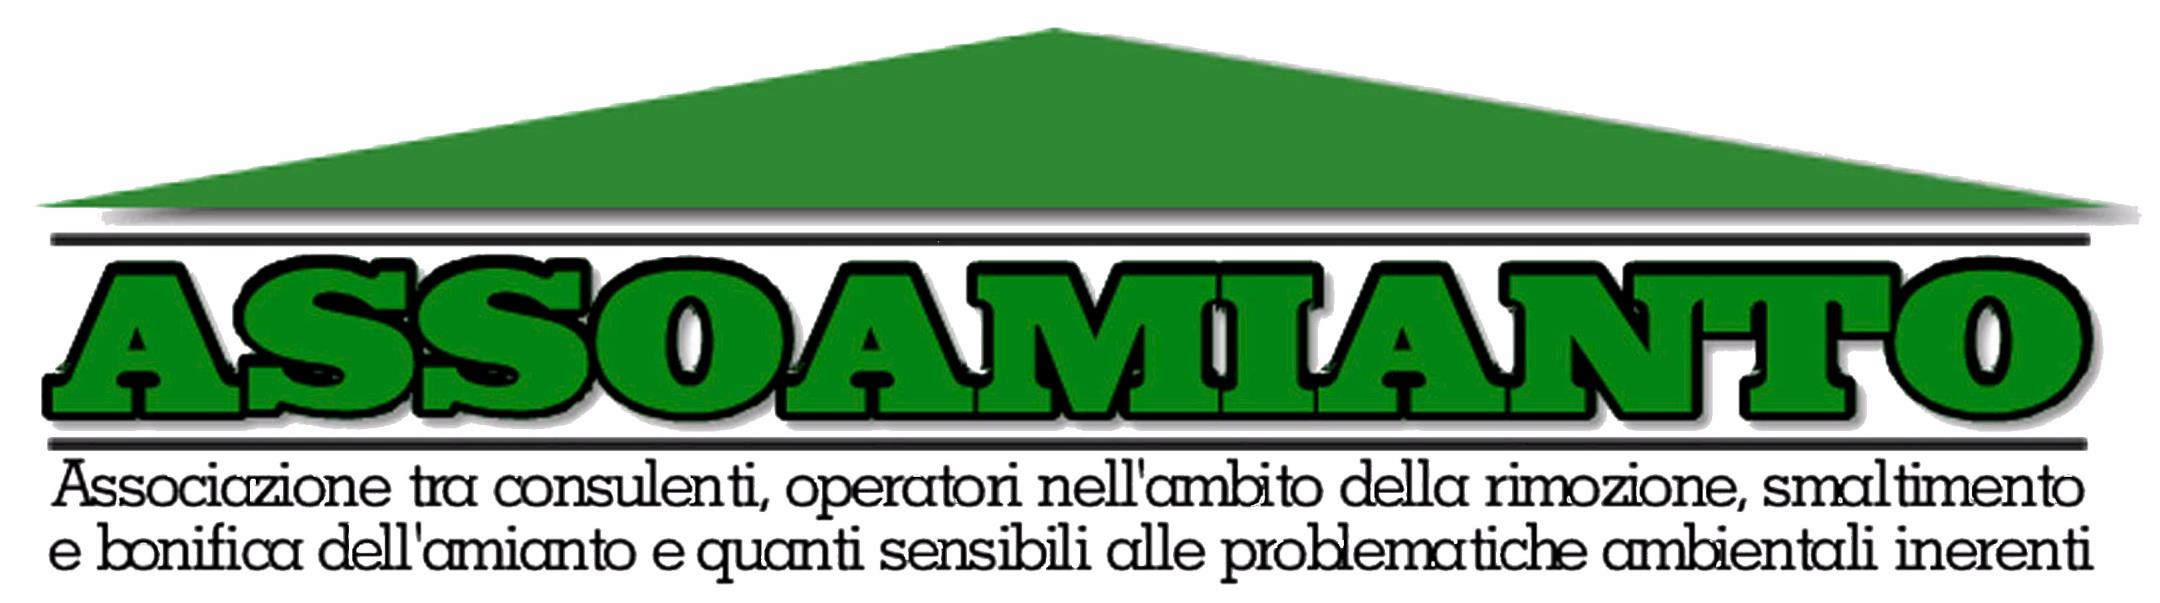 The Italian Association of Asbestos Remediation and Disposal